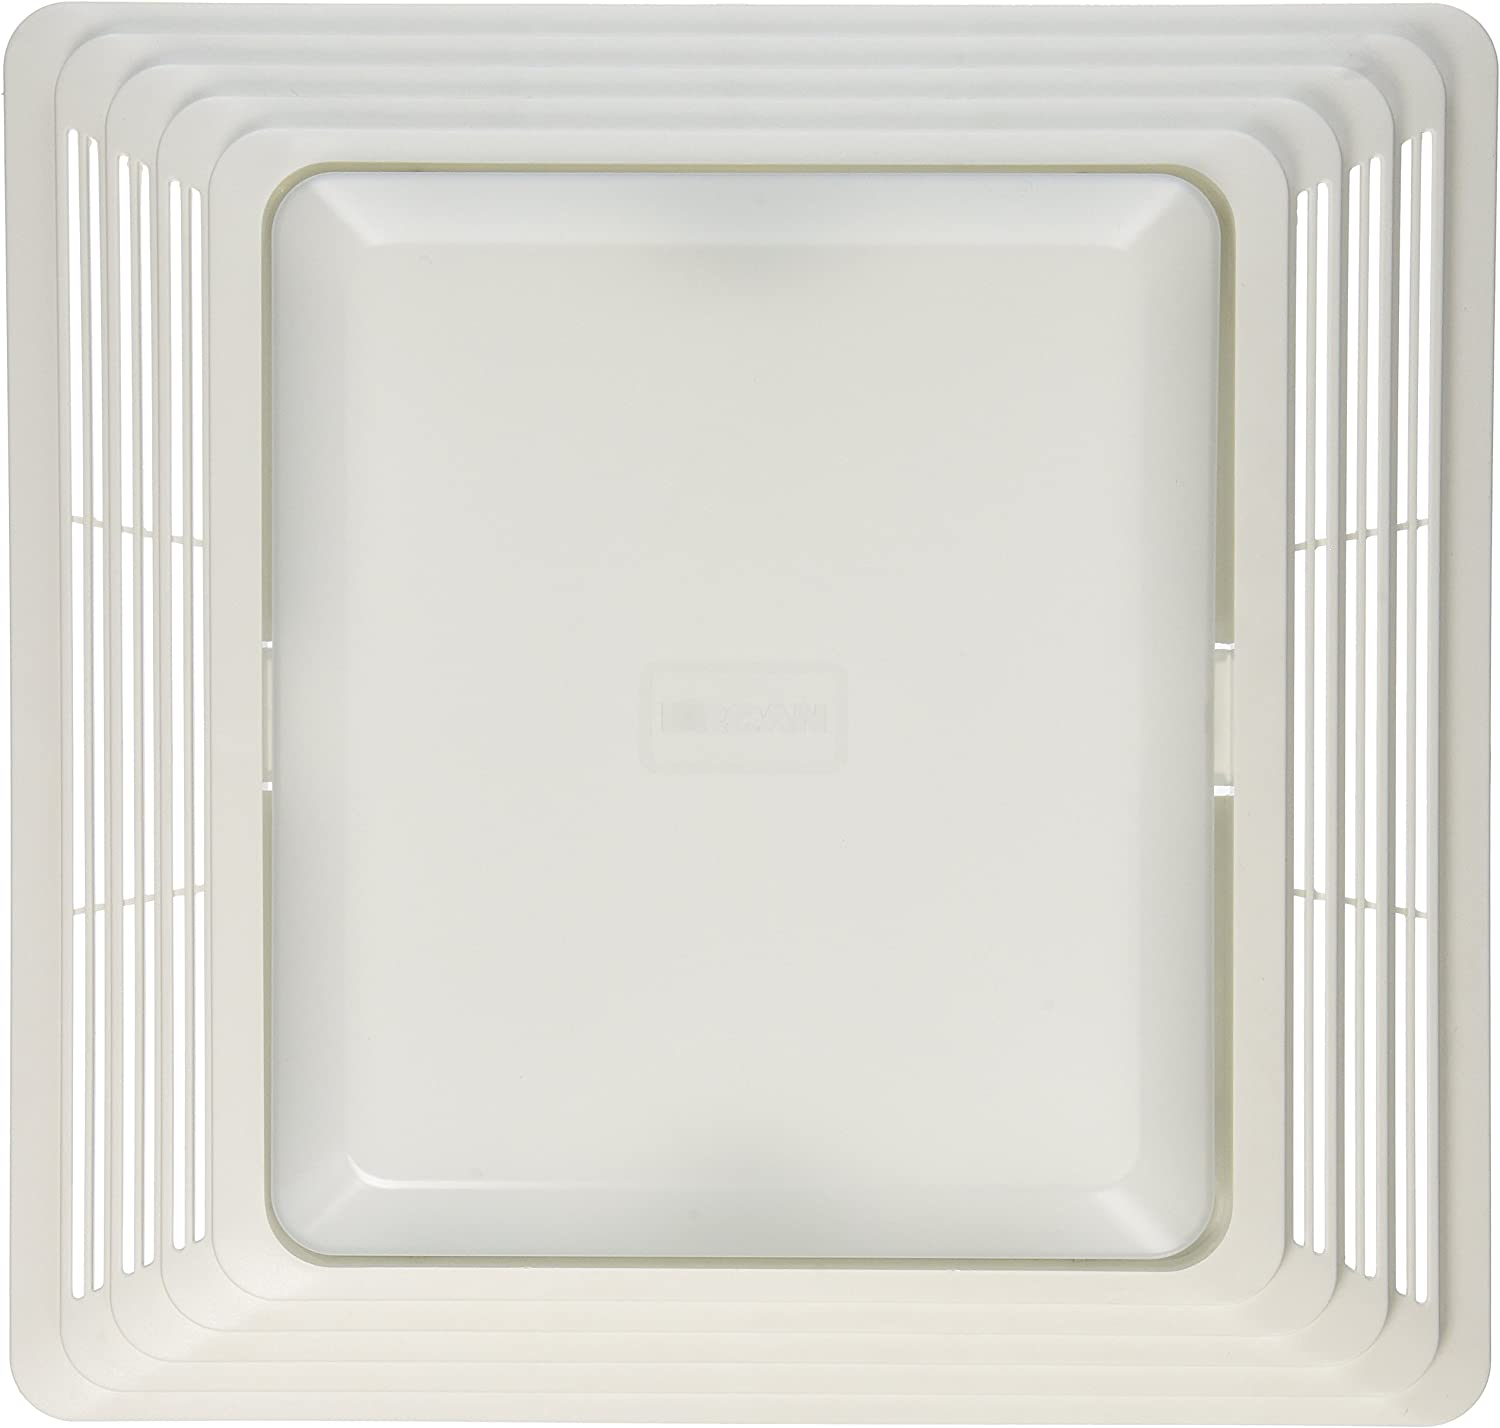 Amazon Com Broan S97014094 Bathroom Fan Cover Grille And Lens Home Kitchen